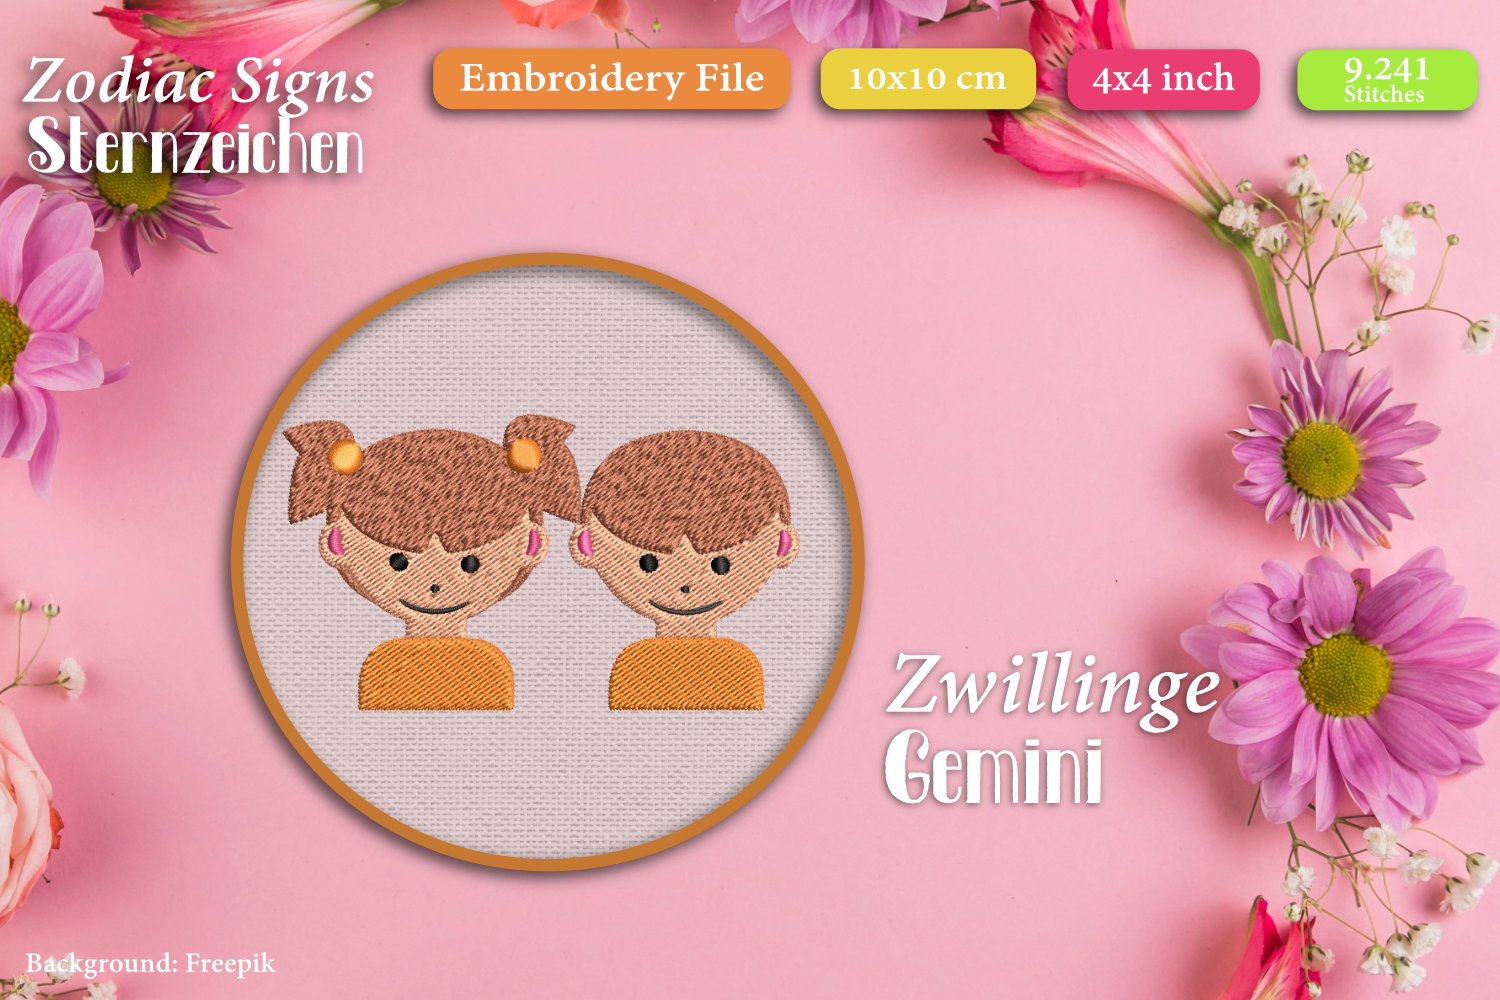 Zodiac signs - Embroidery Files - Bundle example image 7